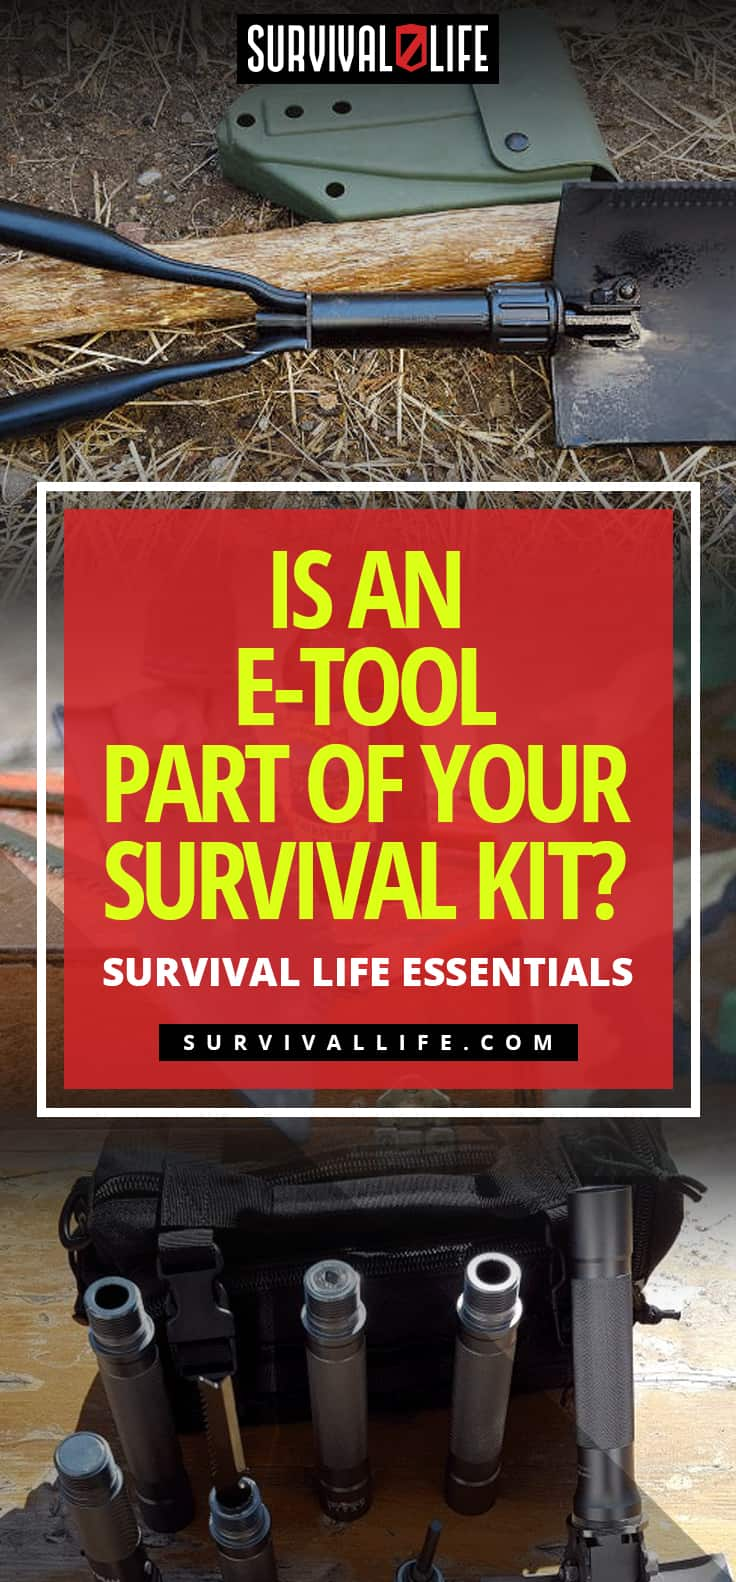 Is An E-tool Part Of Your Survival Kit? | Survival Life Essentials